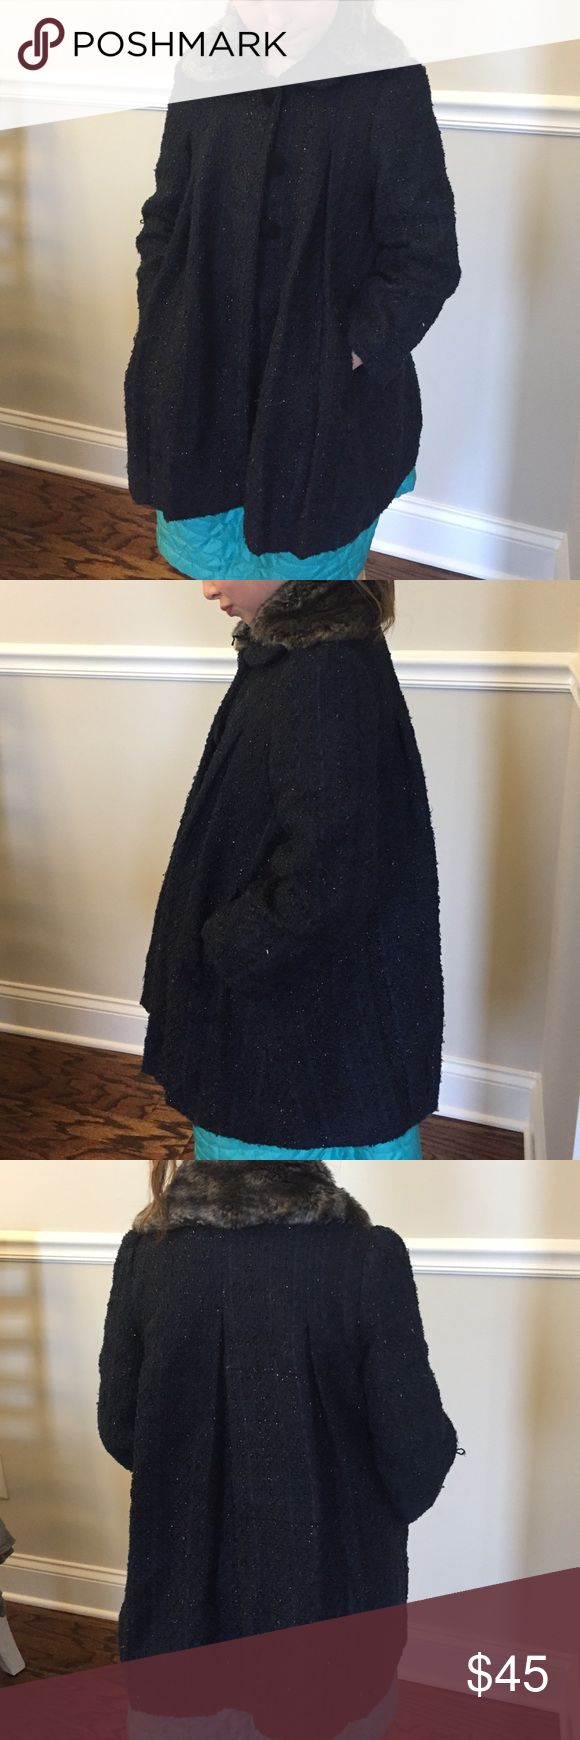 Monsoon girls navy sparkly coat Navy sparkly coat with pleats and removable fur collar. Super adorable, kinda has a swing feel.  Fully lined in satin. Size 7/8 Monsoon brand. Monsoon Jackets & Coats Pea Coats